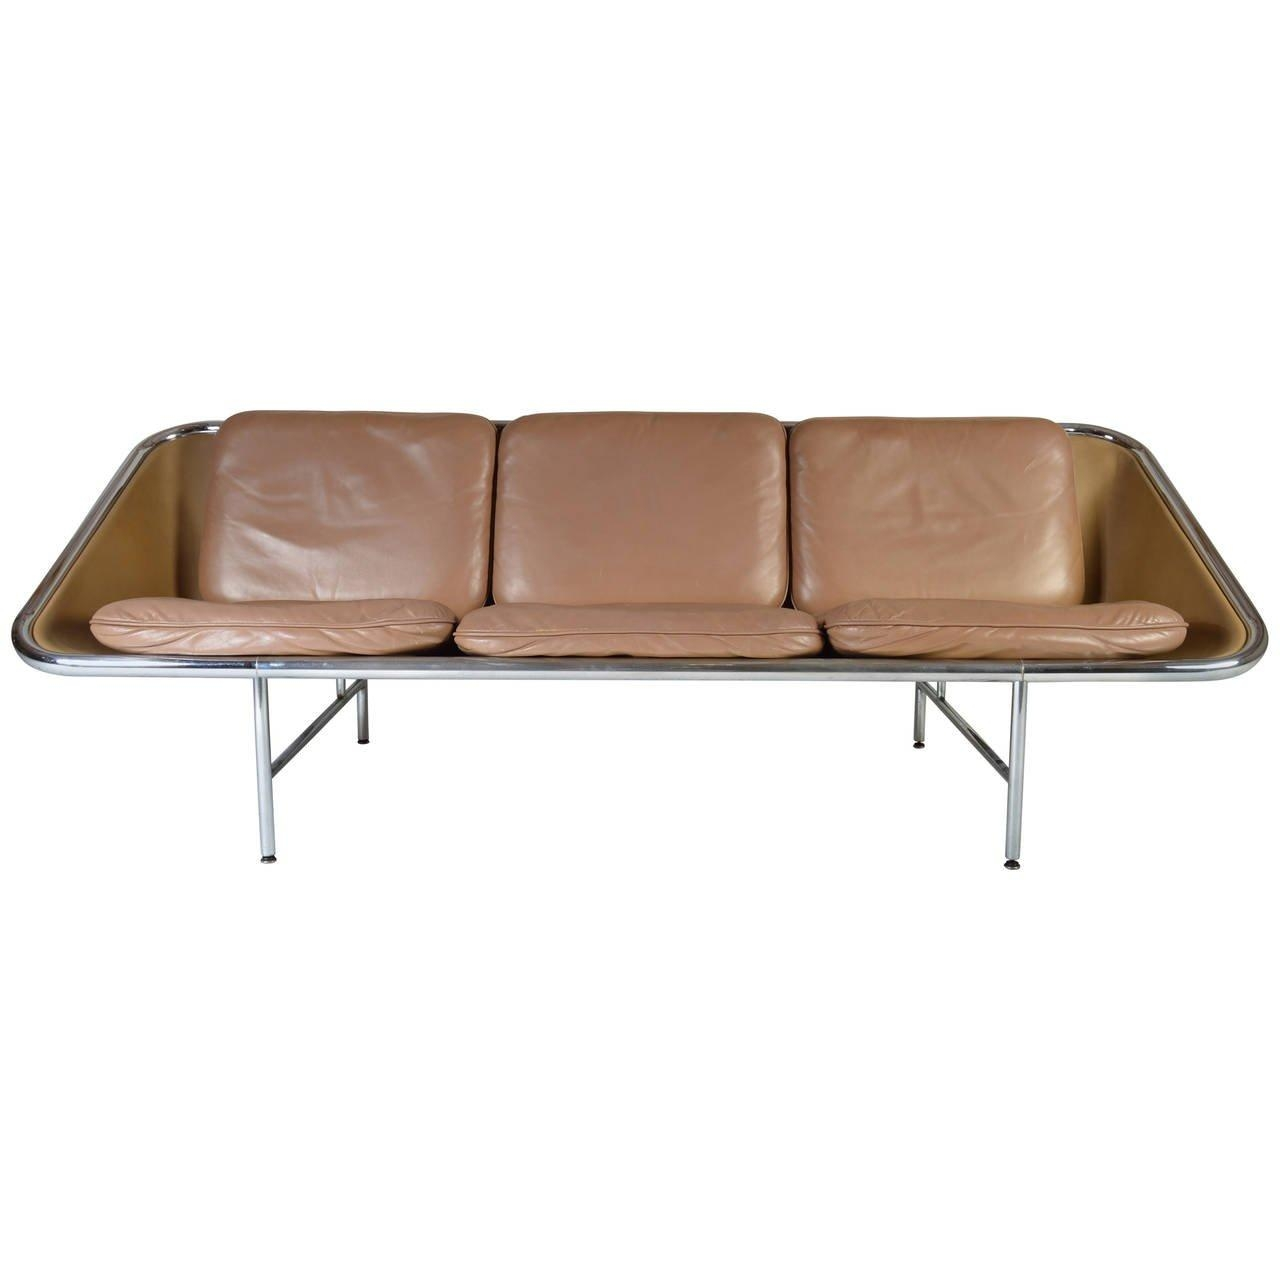 George Nelson Sling Sofa For Herman Miller At 1Stdibs throughout George Nelson Sofas